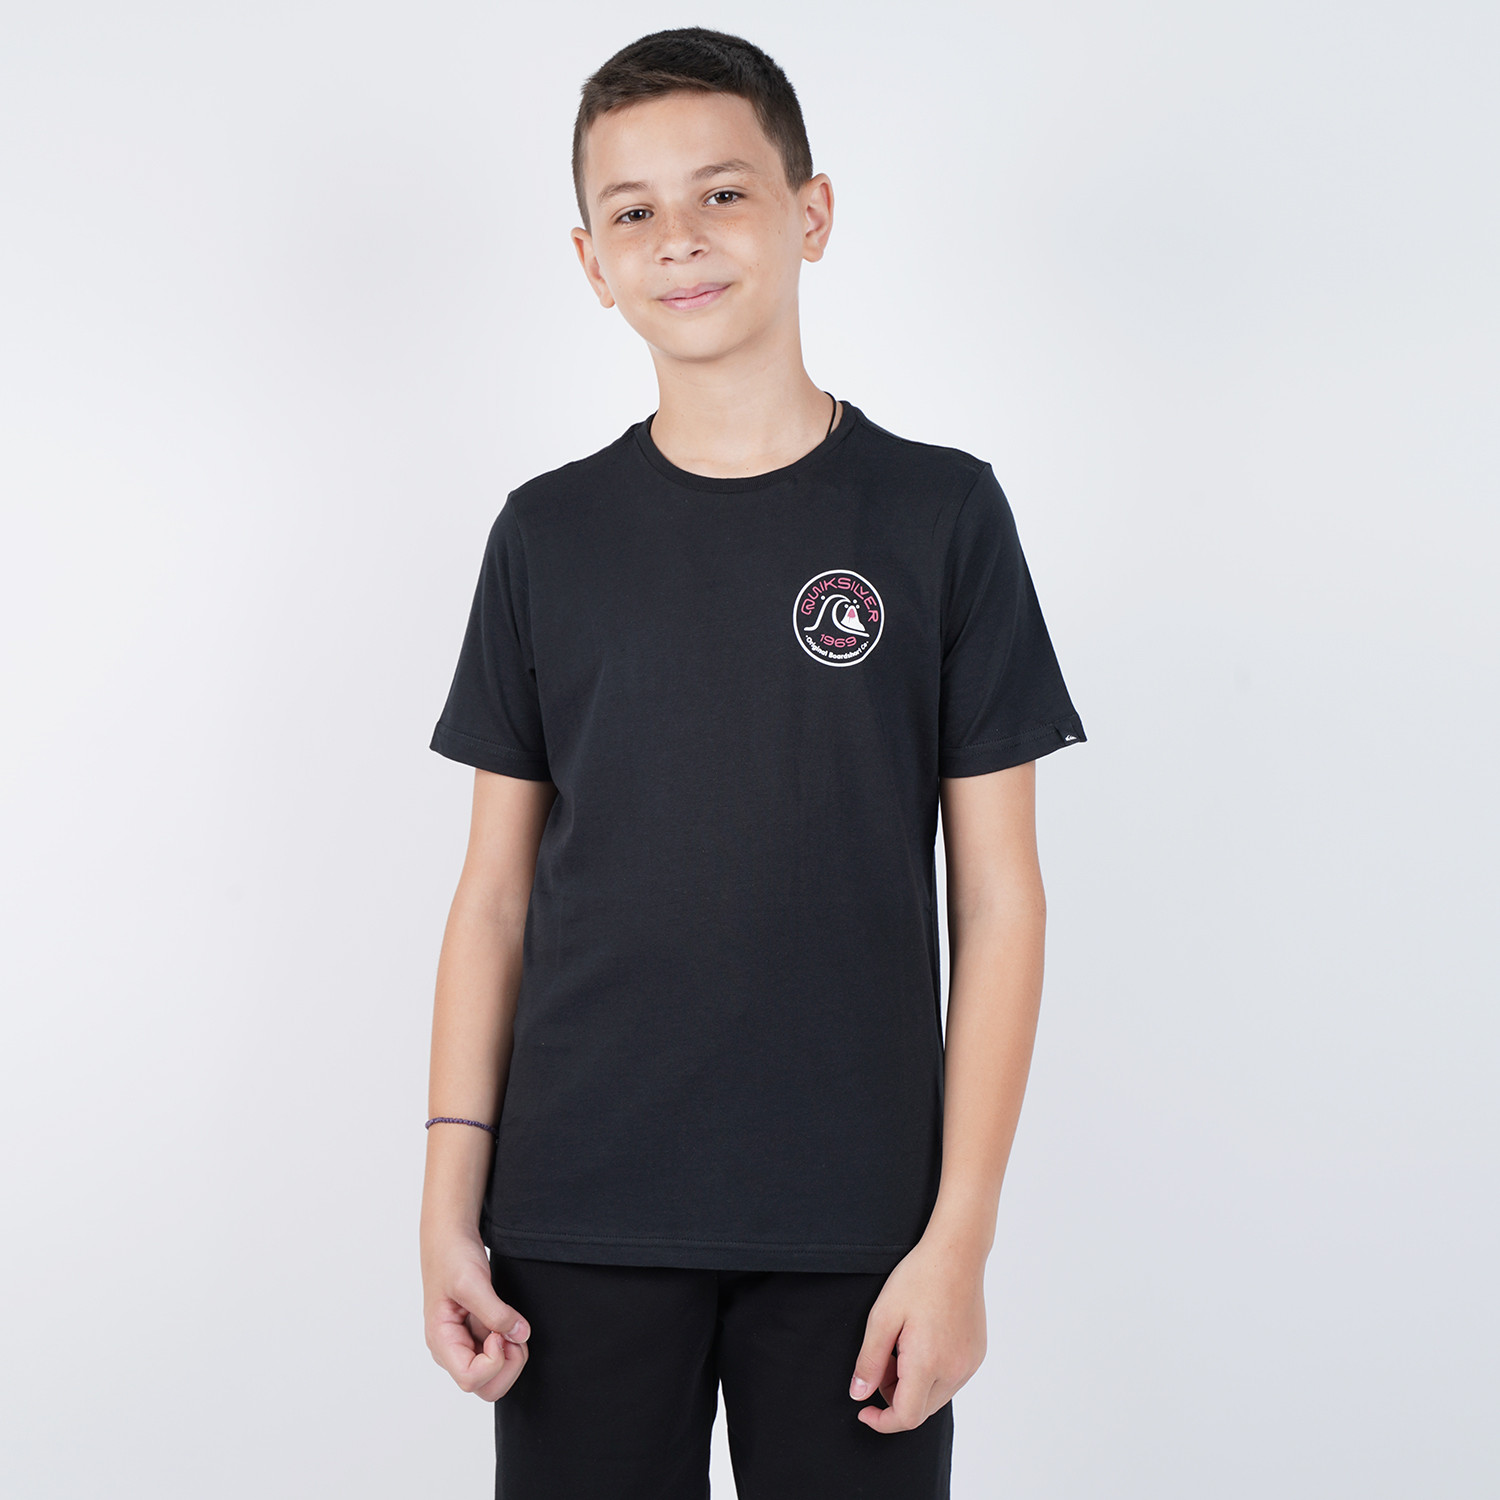 Quiksilver Close Call Kids' Tee (9000050419_1469)